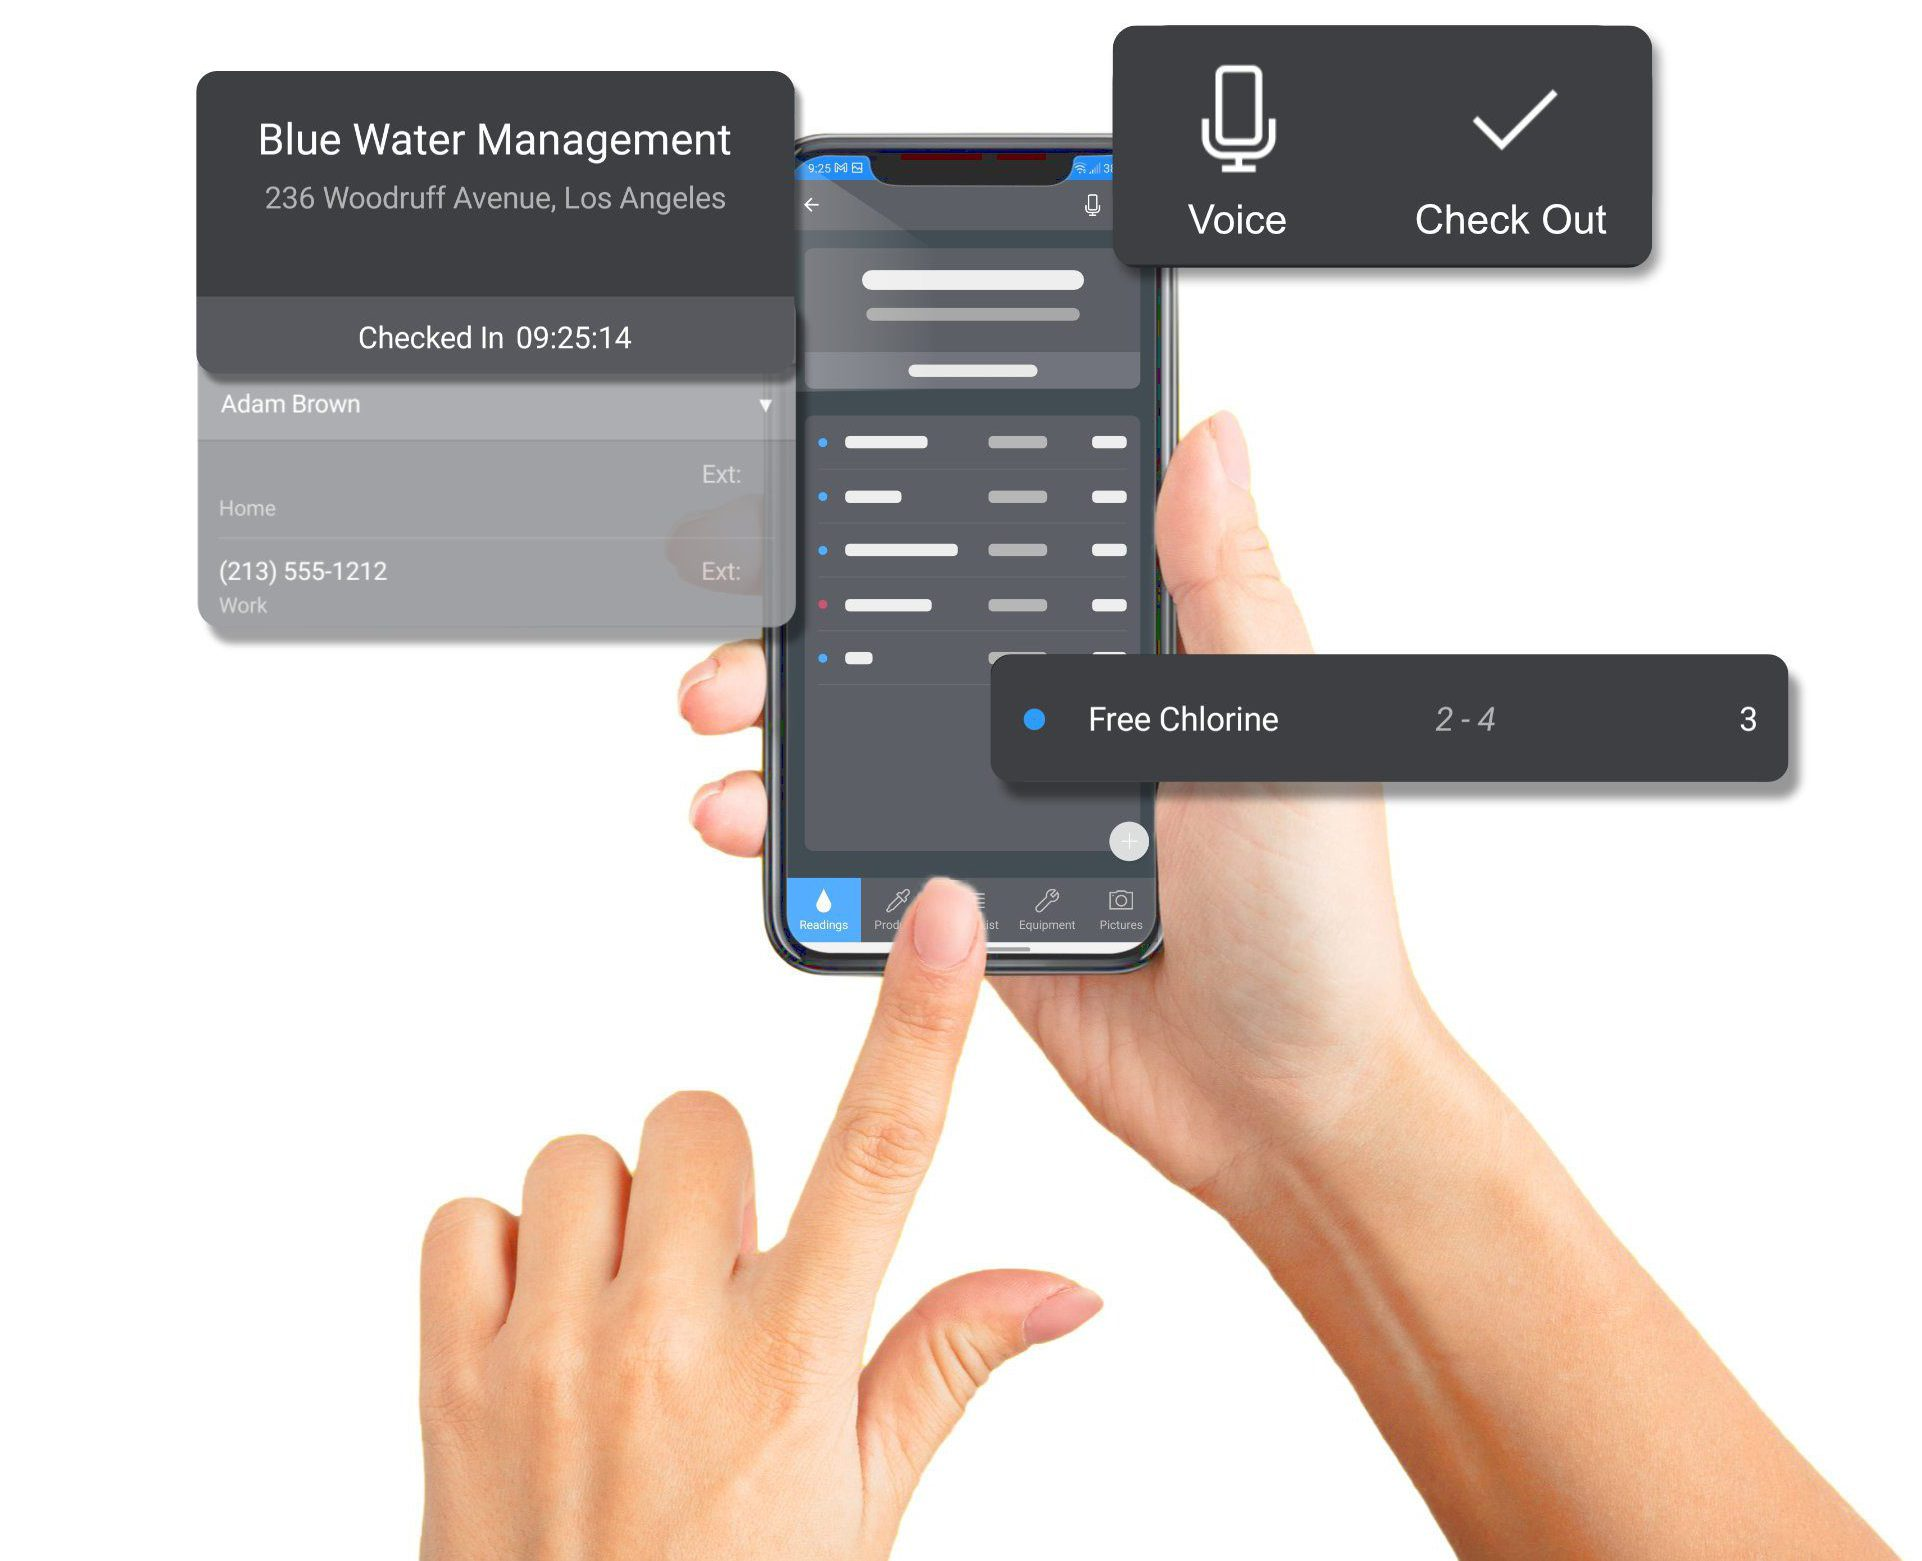 Customer and route management on an iPhone using Wise Software - Enterprise.